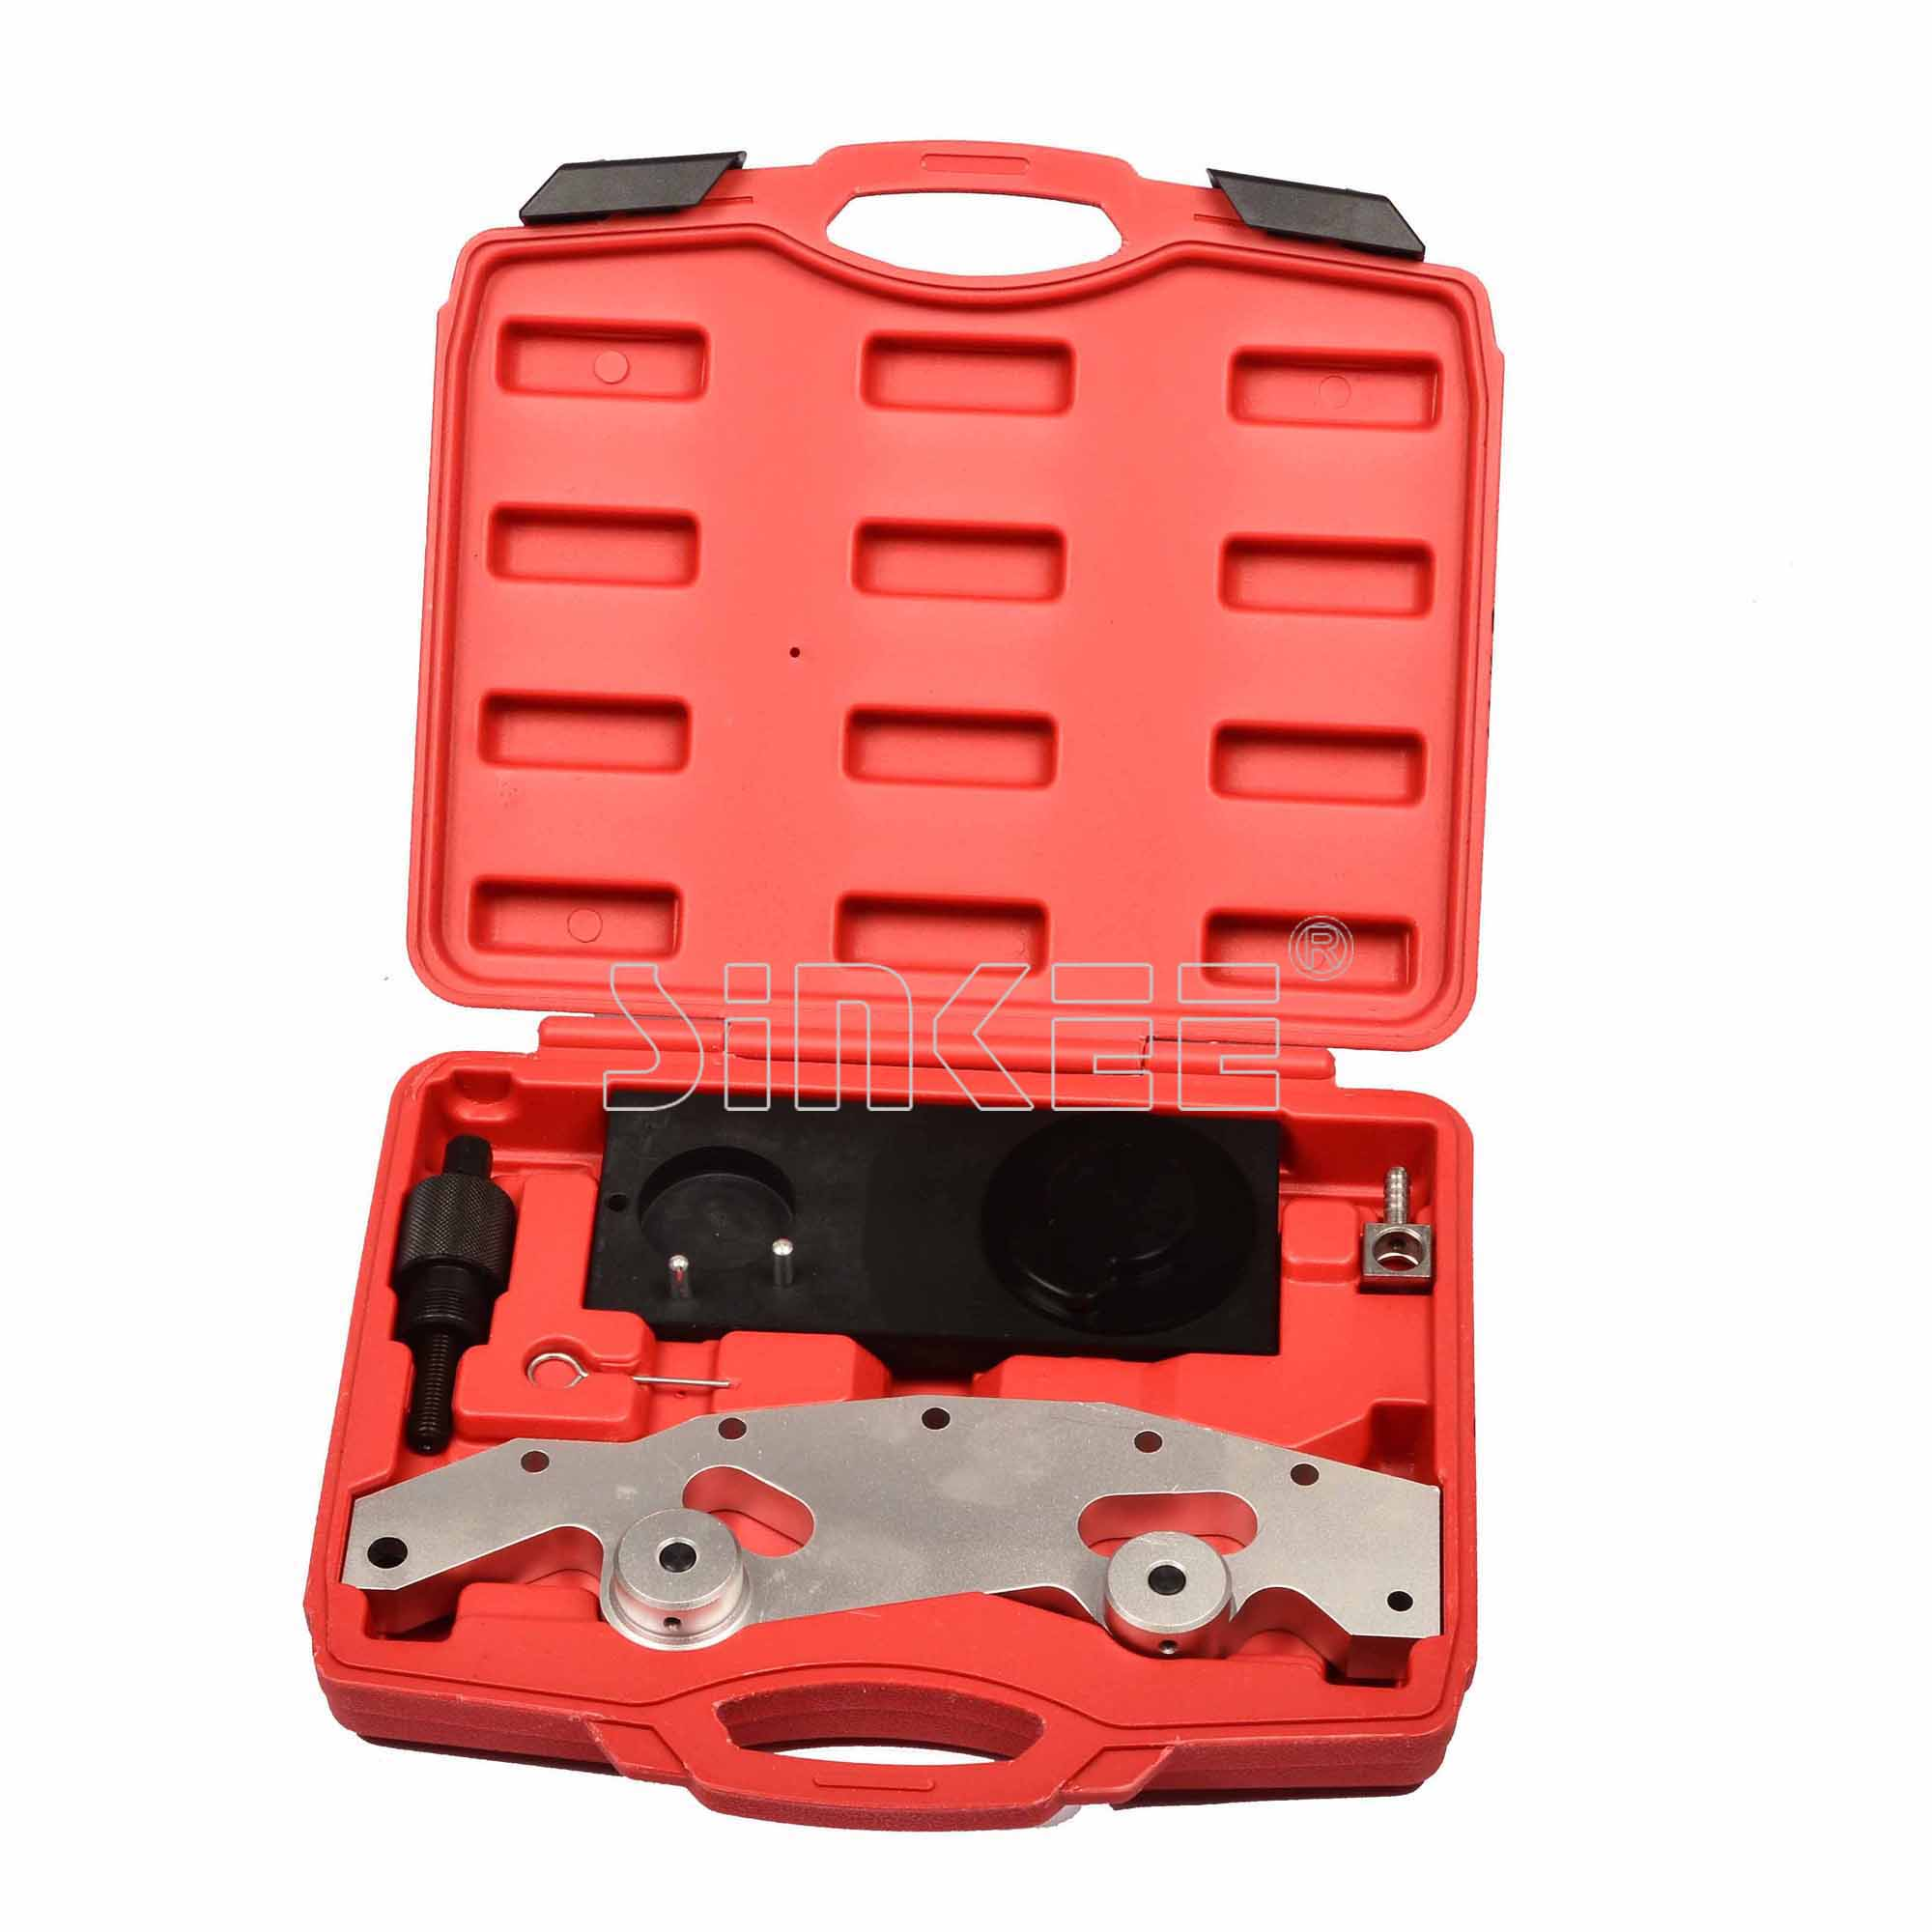 Double Vanos Assembly Timing Engine Tool 5pc Set For BMW M52TU/M54/M56 double vanos car gargue tools for bmw m52 m52tu m54 m56 engines camshaft alignment timing locking tool